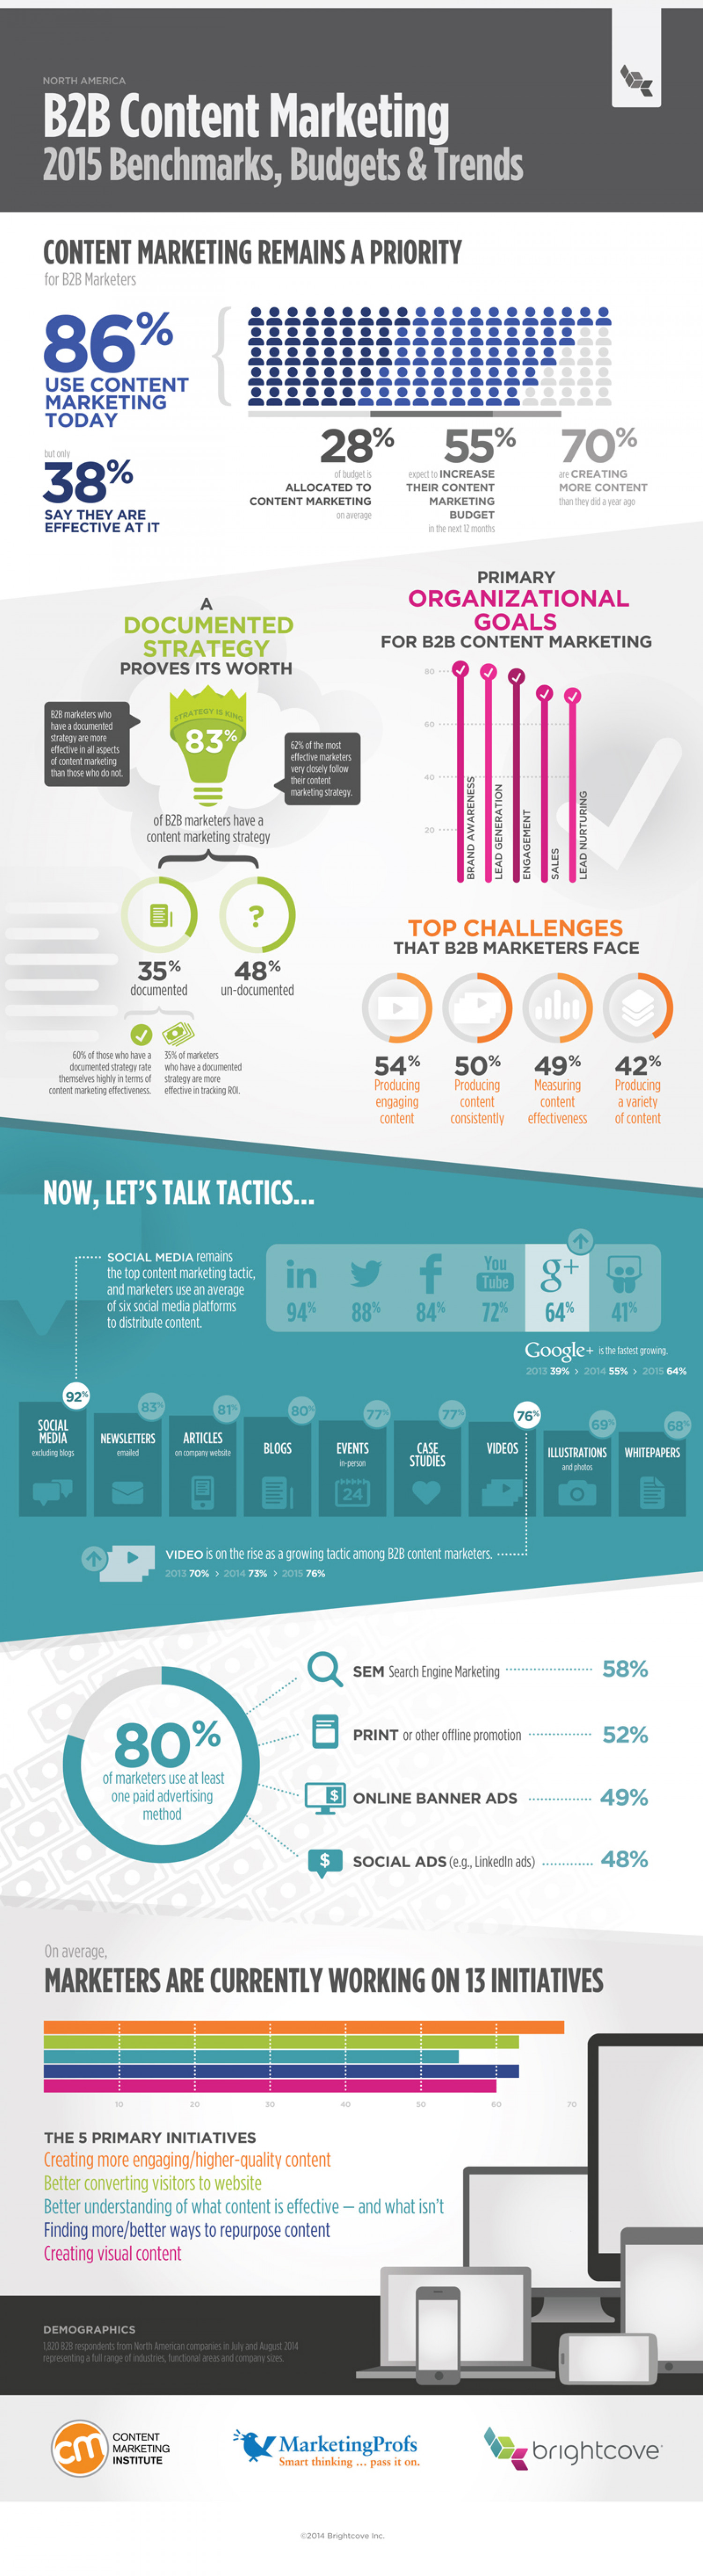 B2B Content Marketing: 2015 Benchmarks, Budgets and Trends Infographic